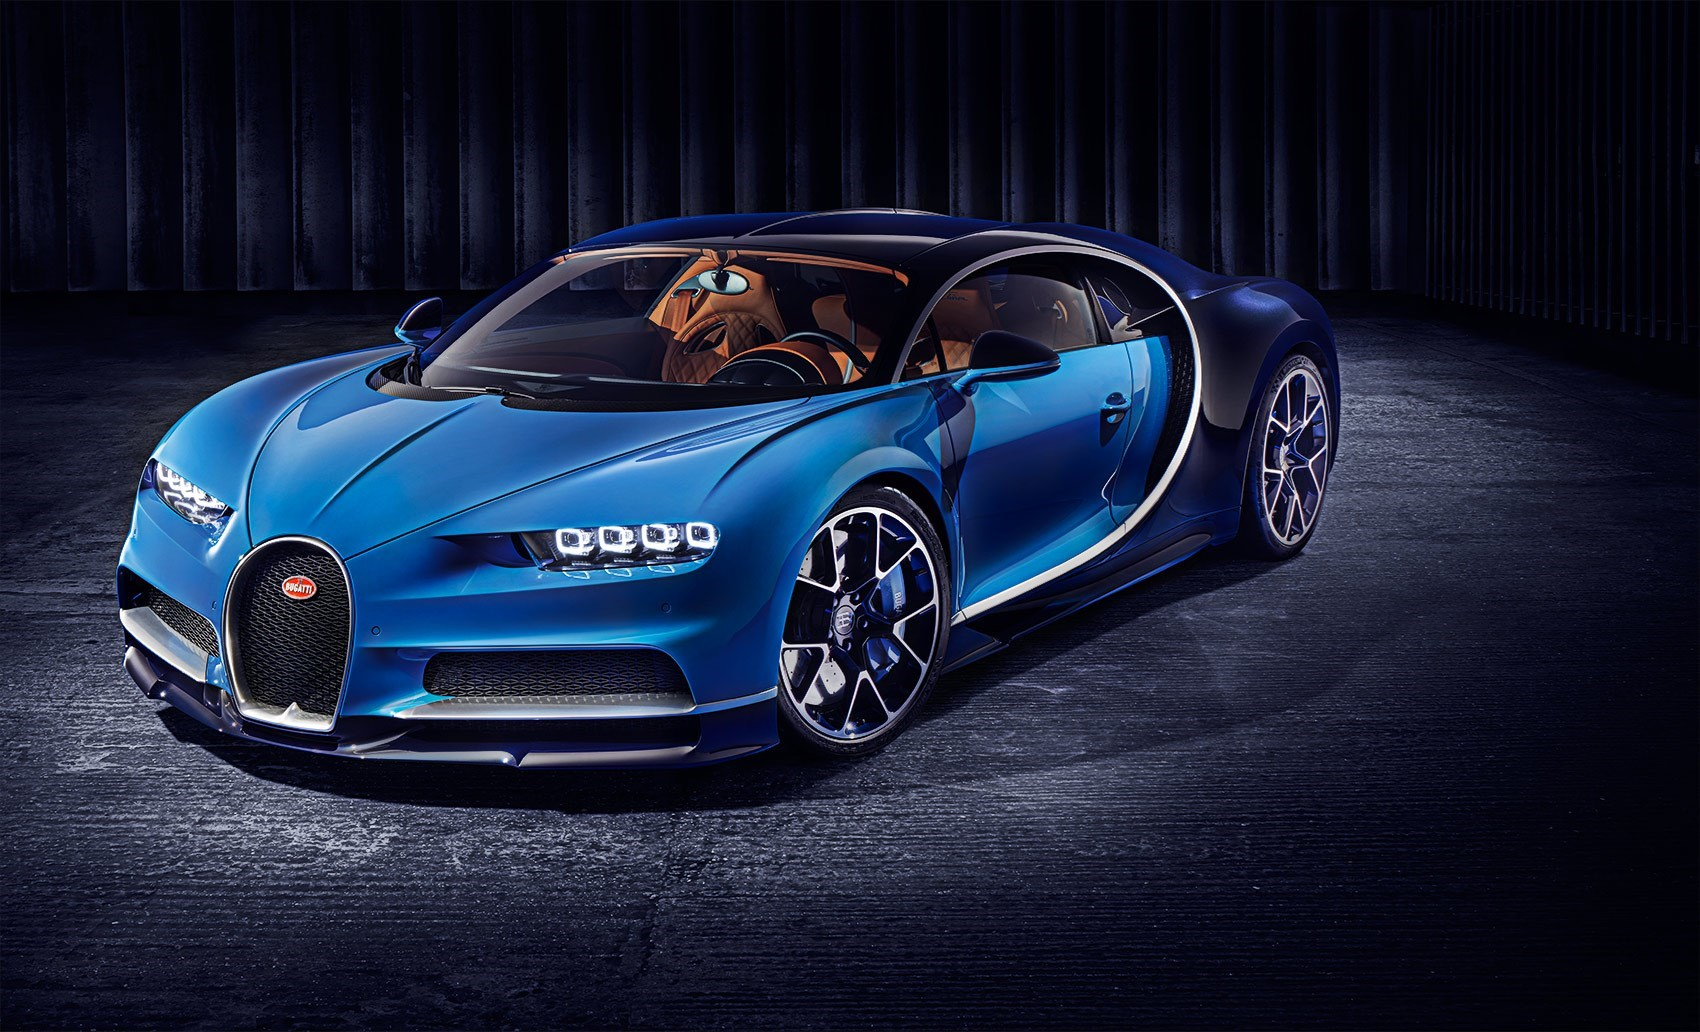 bugatti vision gt price 2017 with Not Your Average Car Showroom Bugatti Opens Flagship Store In London on Ford Gt 2017 additionally 1110389 new Porsche 918 Spyder Surfaces For Sale Online additionally Bugatti Vision 1 12 likewise 2019 Nissan Gtr Concept Rear as well Not Your Average Car Showroom Bugatti Opens Flagship Store In London.